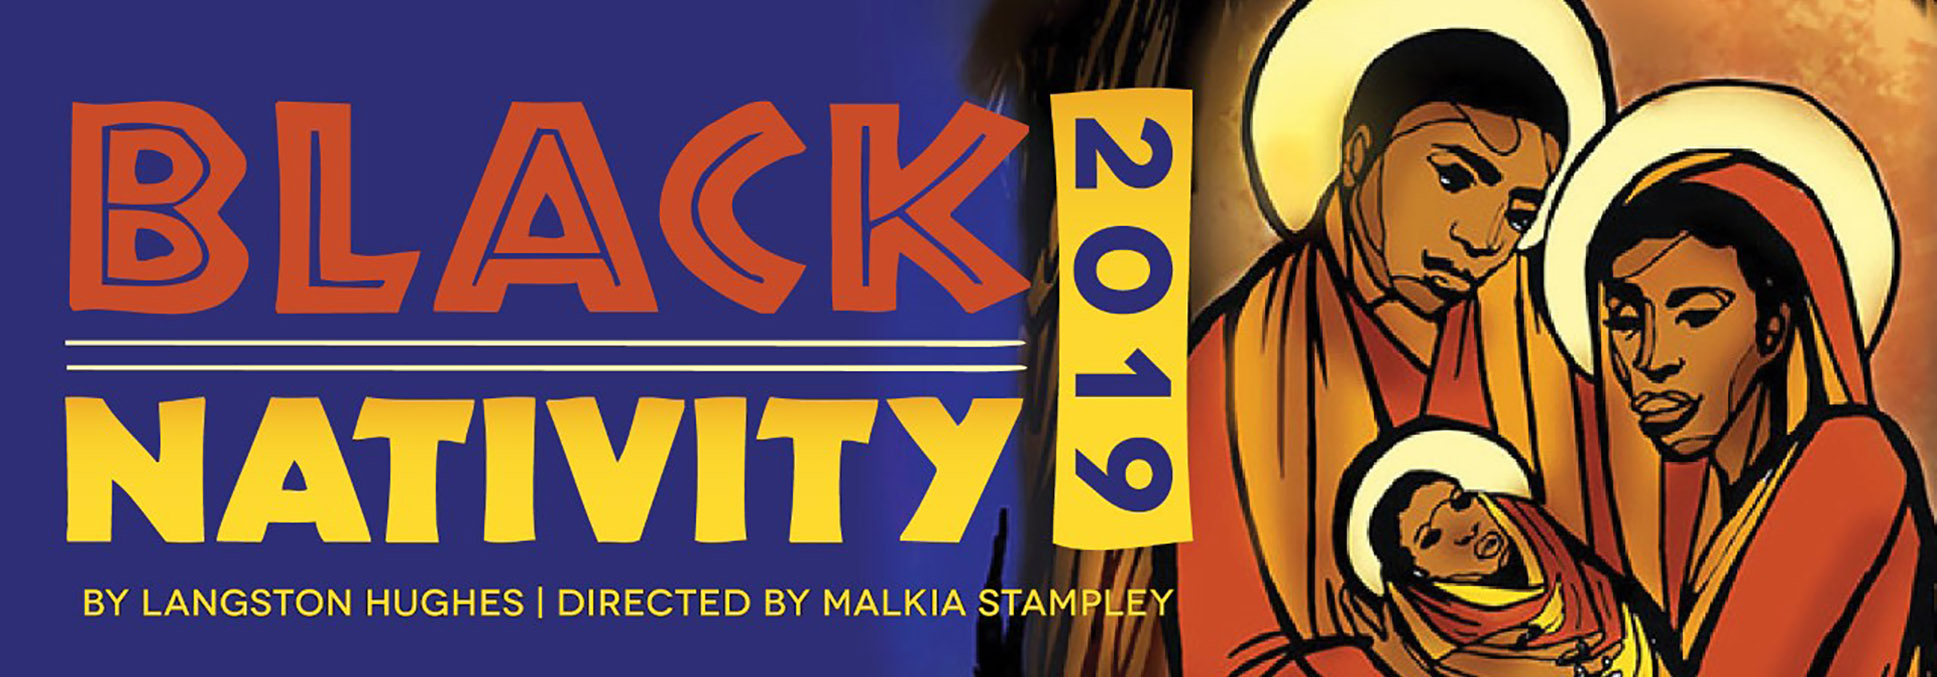 Black Nativity at the Marcus Center in Milwaukee